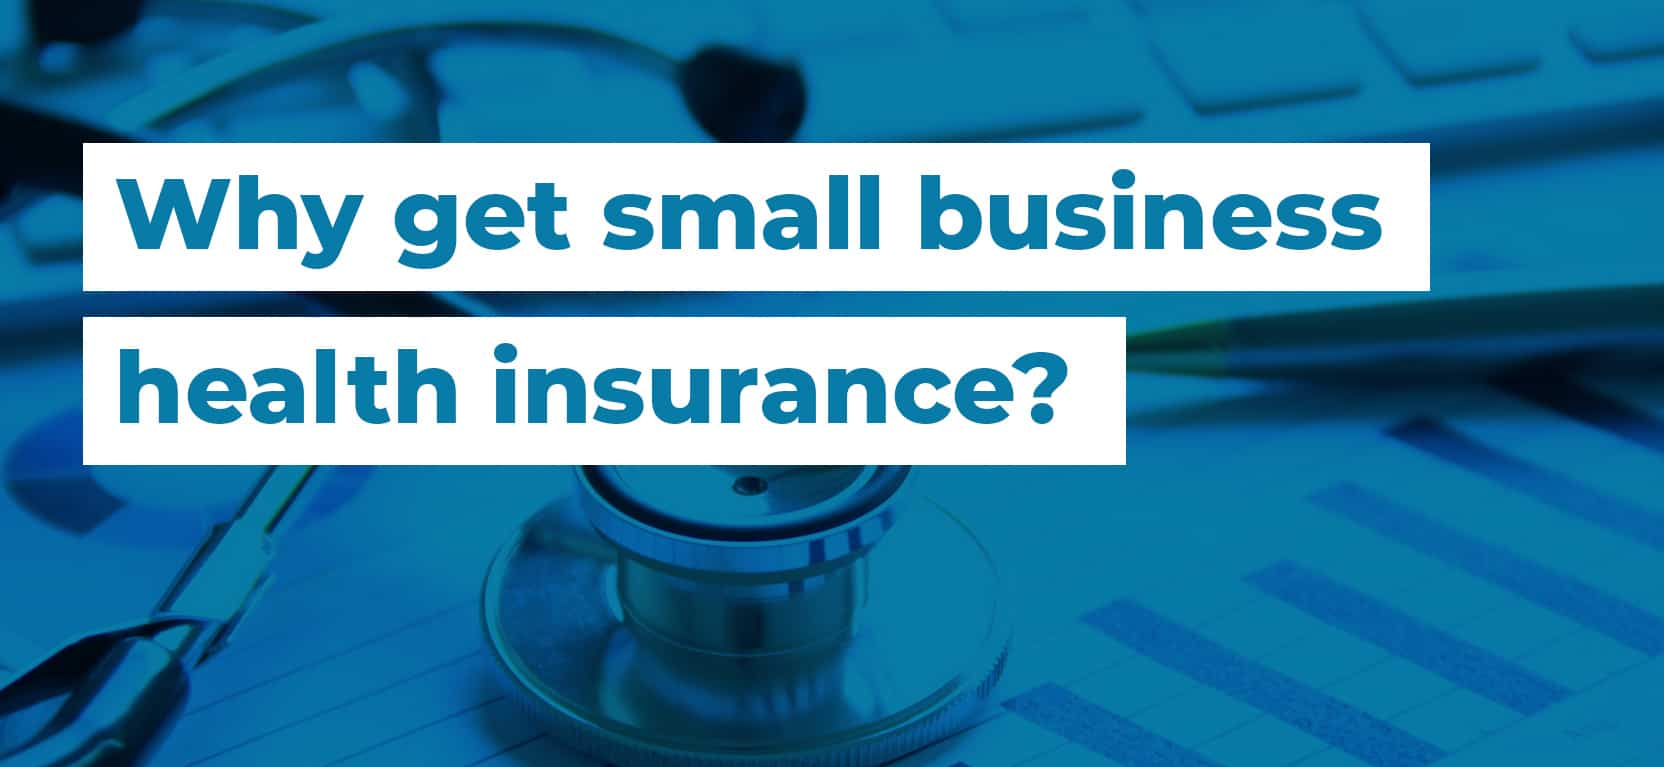 49 Why get small business health insurance2